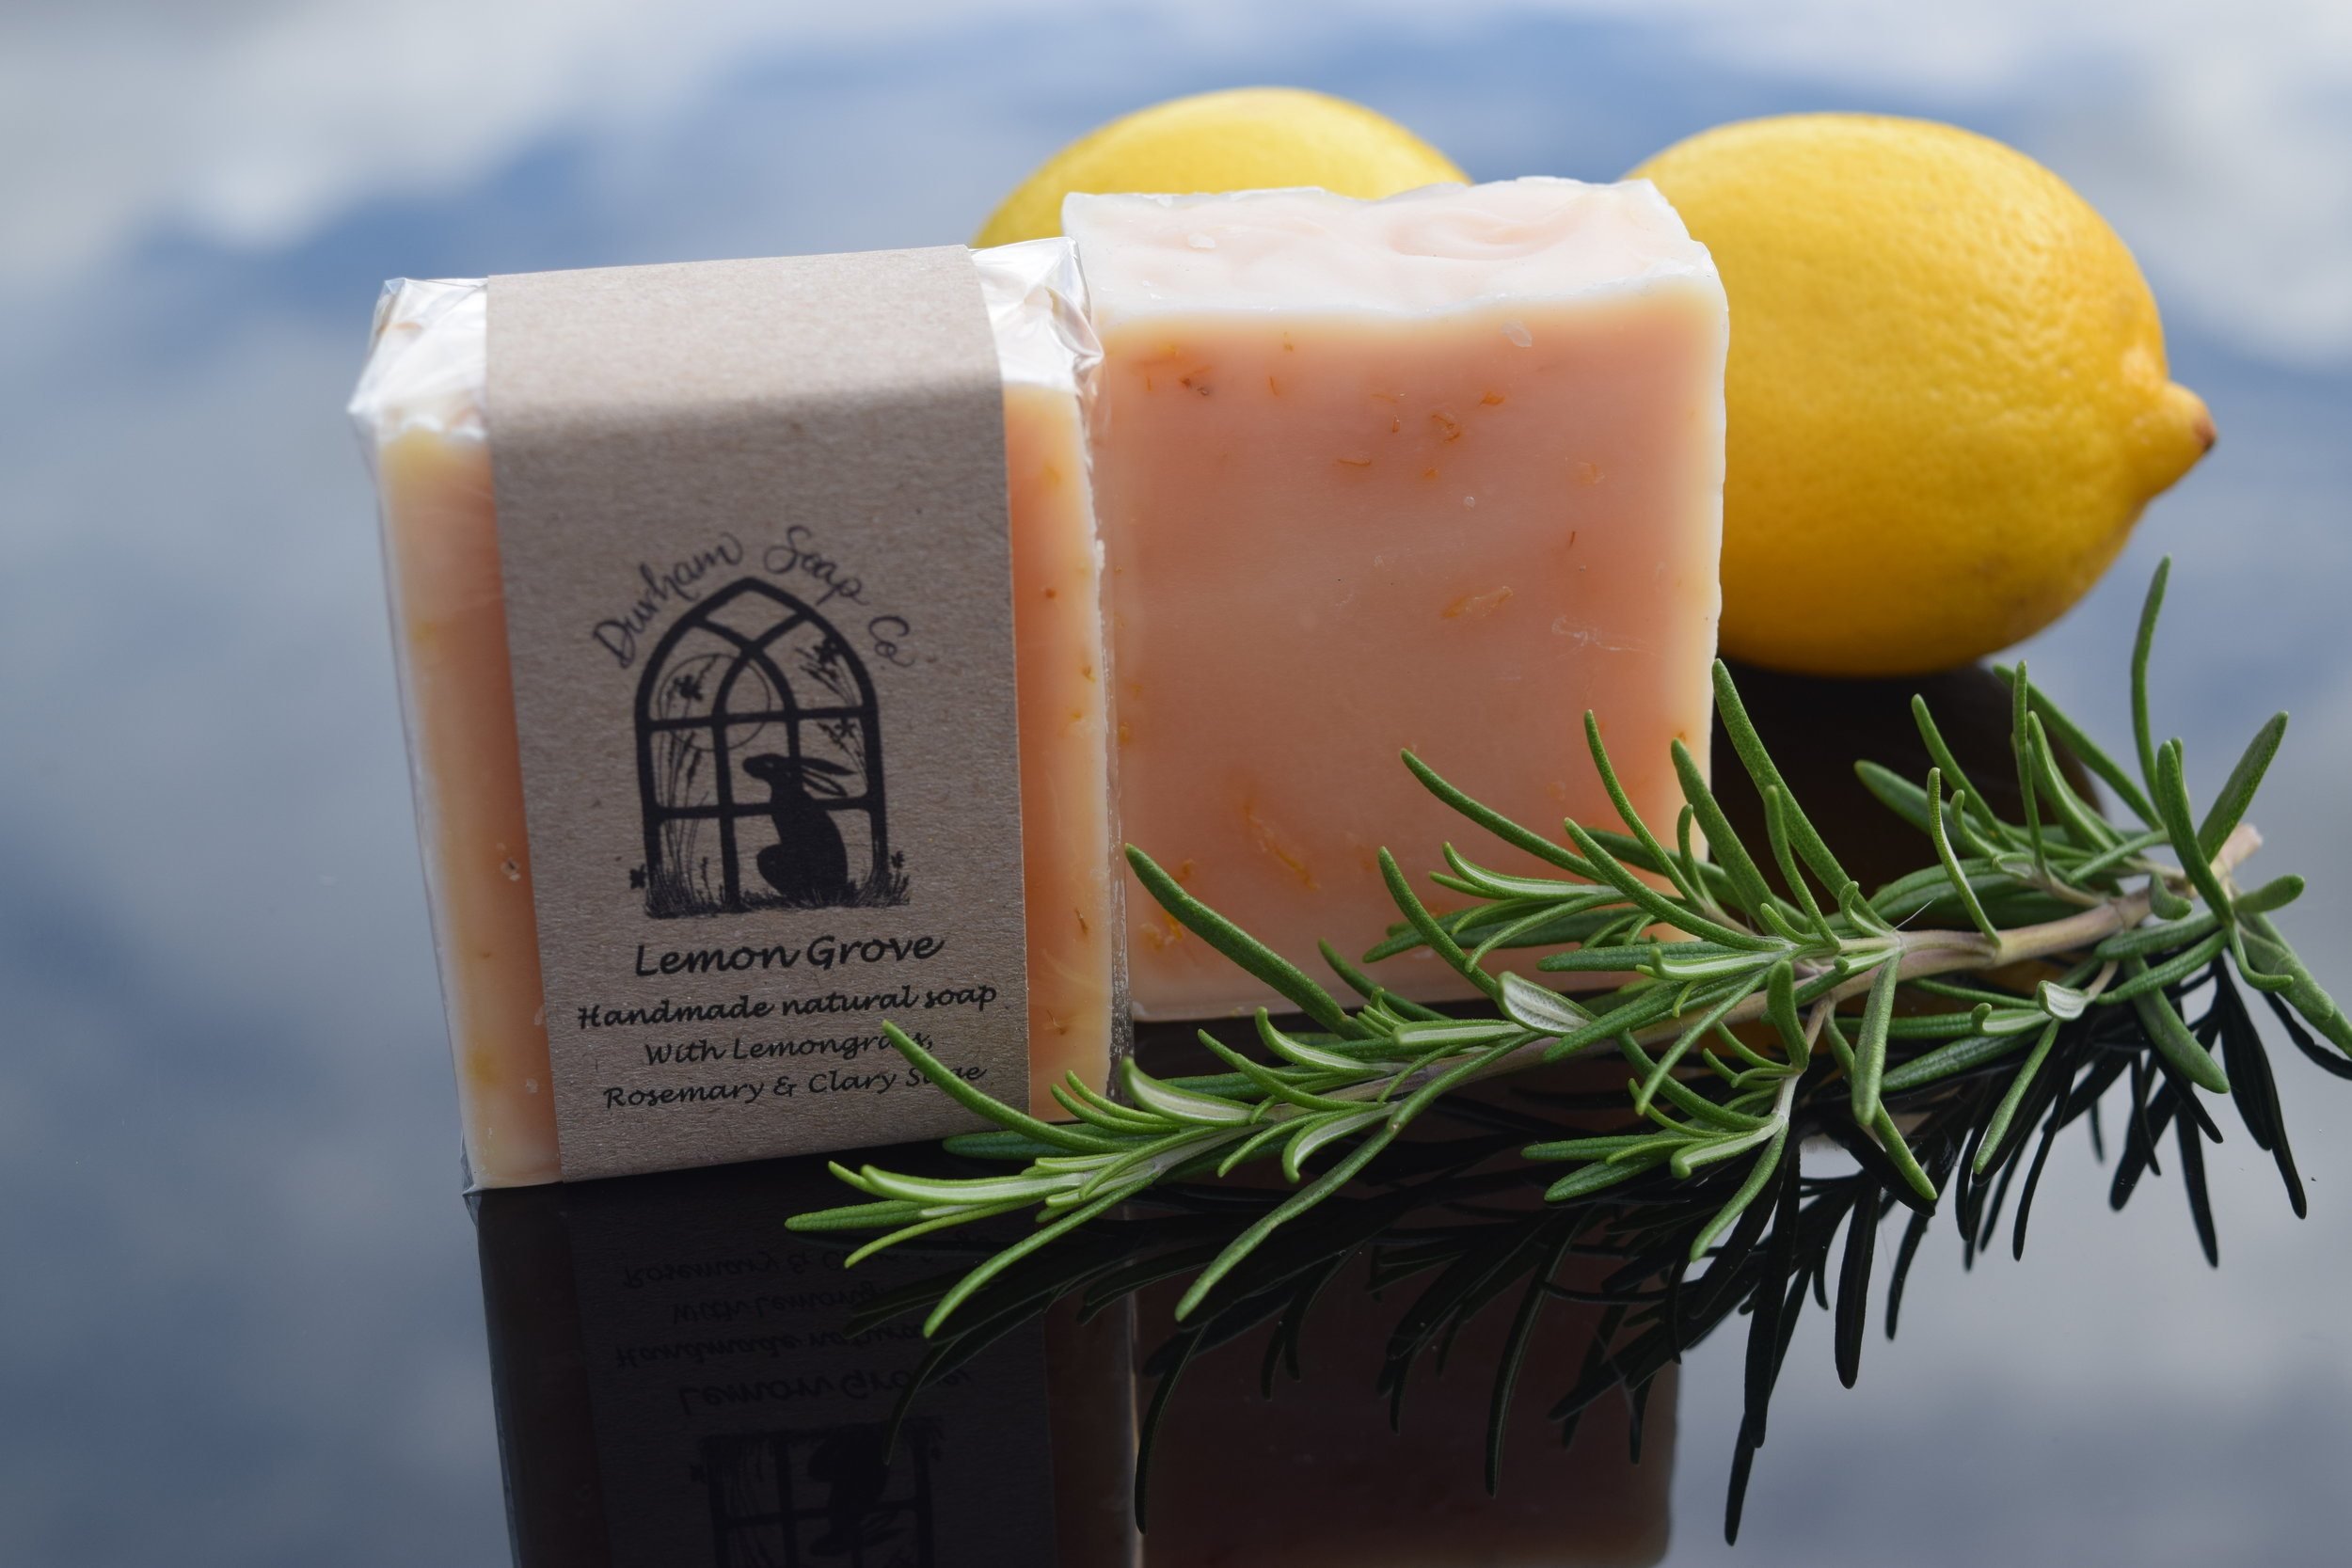 Lemon Grove - Natural soap, handmade with our blend of pure plant oils, enriched with moisturising shea butter, cocoa butter and castor oil for a rich and creamy lather. Our soap is infused with golden calendula petals and fragranced with a blend of lemongrass, may chang, rosemary and clary sage essential oils to evoke the invigorating, citrus and herbal scent of an Italian lemon grove.Ingredients: Olive oil, coconut oil, sunflower oil, shea butter, cocoa butter, water, glycerin, castor oil, lemongrass oil, may chang oil, rosemary oil, clary sage oil, calendula flowers, Vitamin E, citral*, limonene*, linalool*, * = occurs naturally in essential oils.Net weight: 100 g